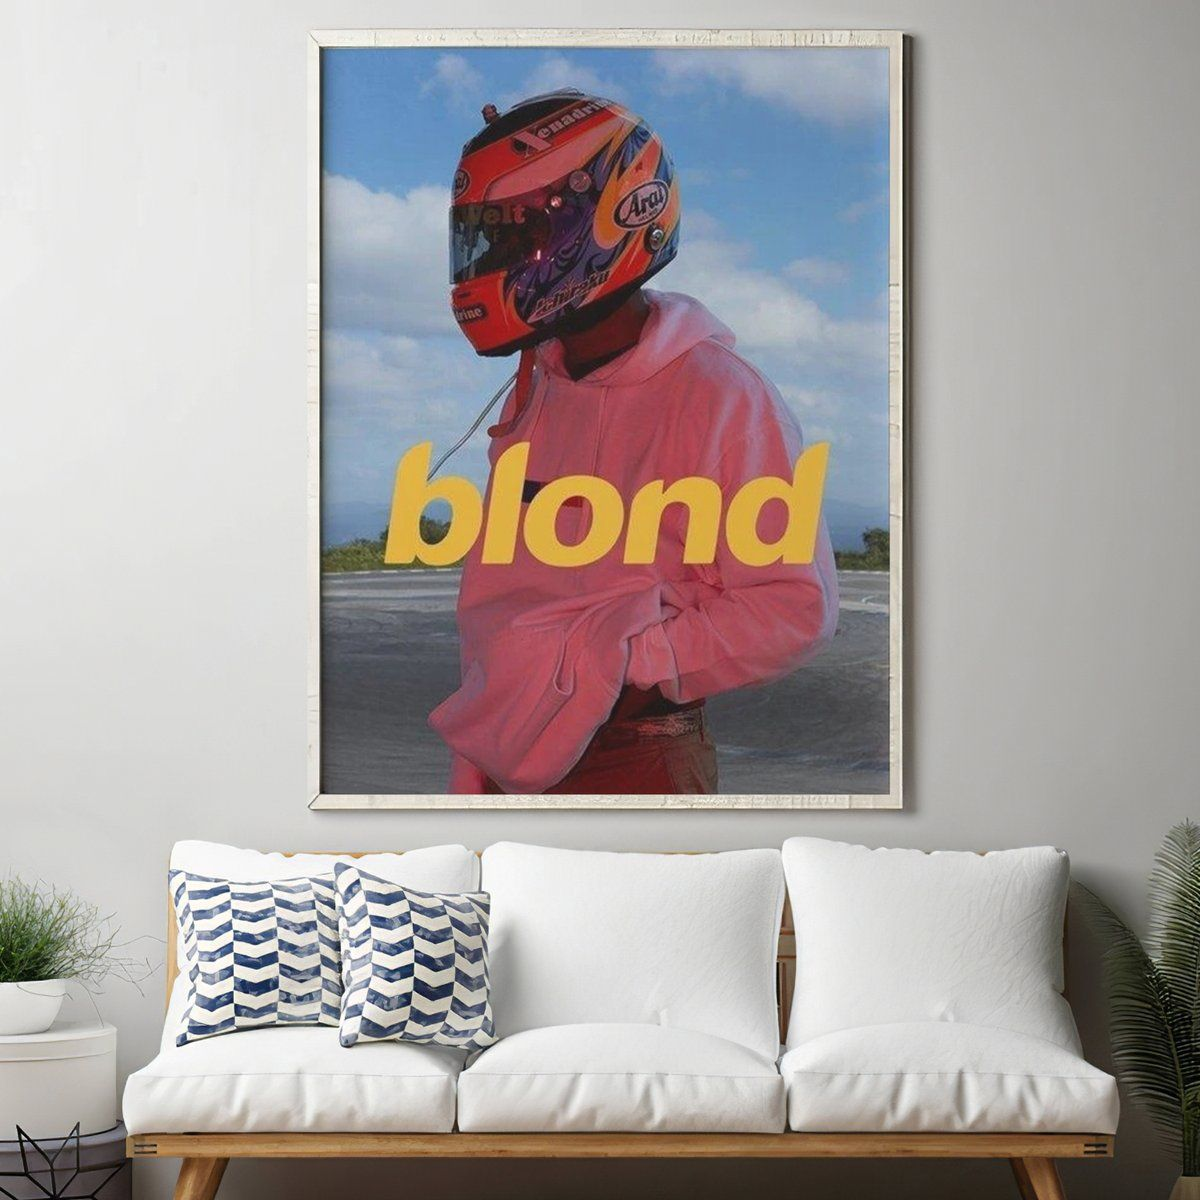 Blond Poster Exclusive At Wallart Eshop In 2020 Wall Art Poster Lyric Poster